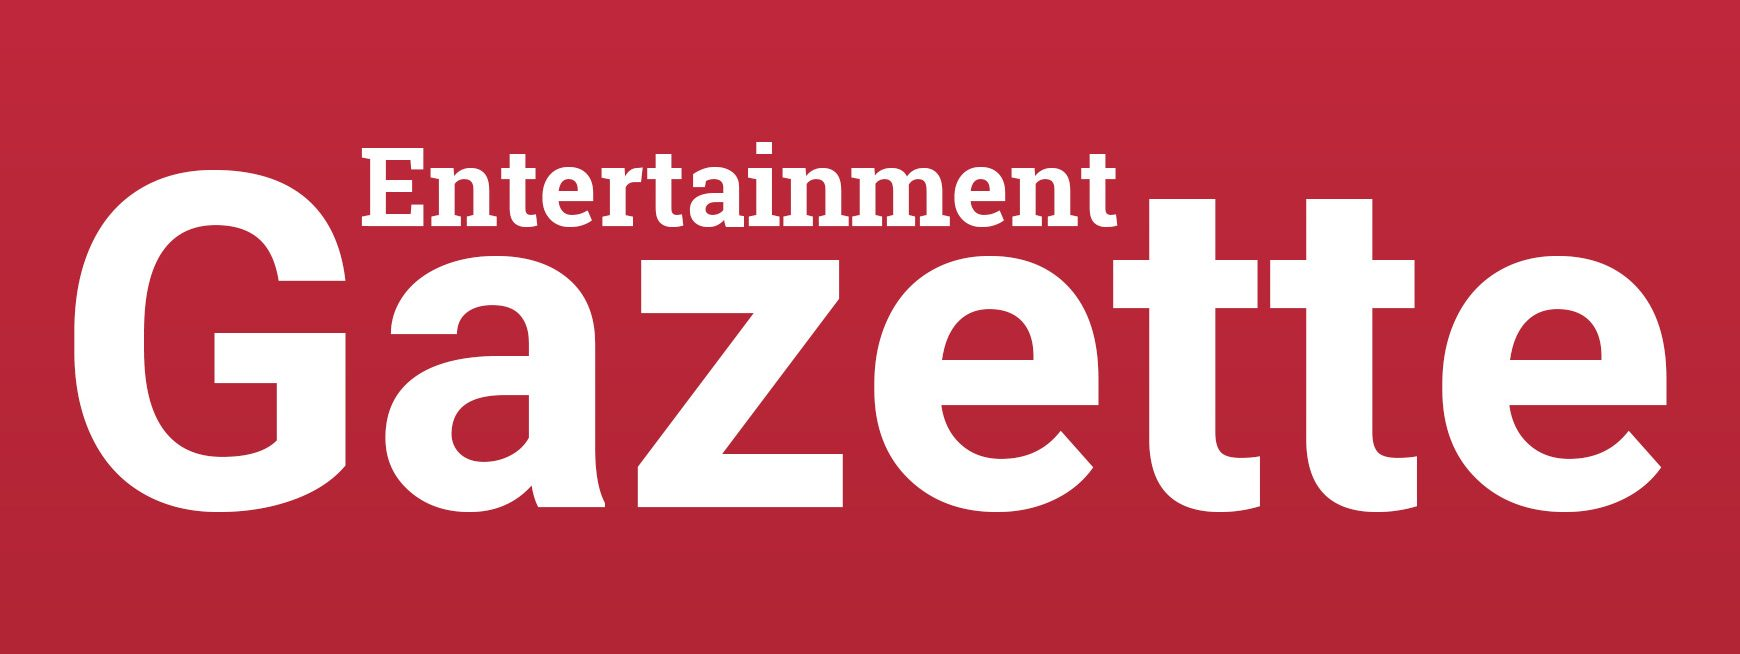 The Entertainment Gazette